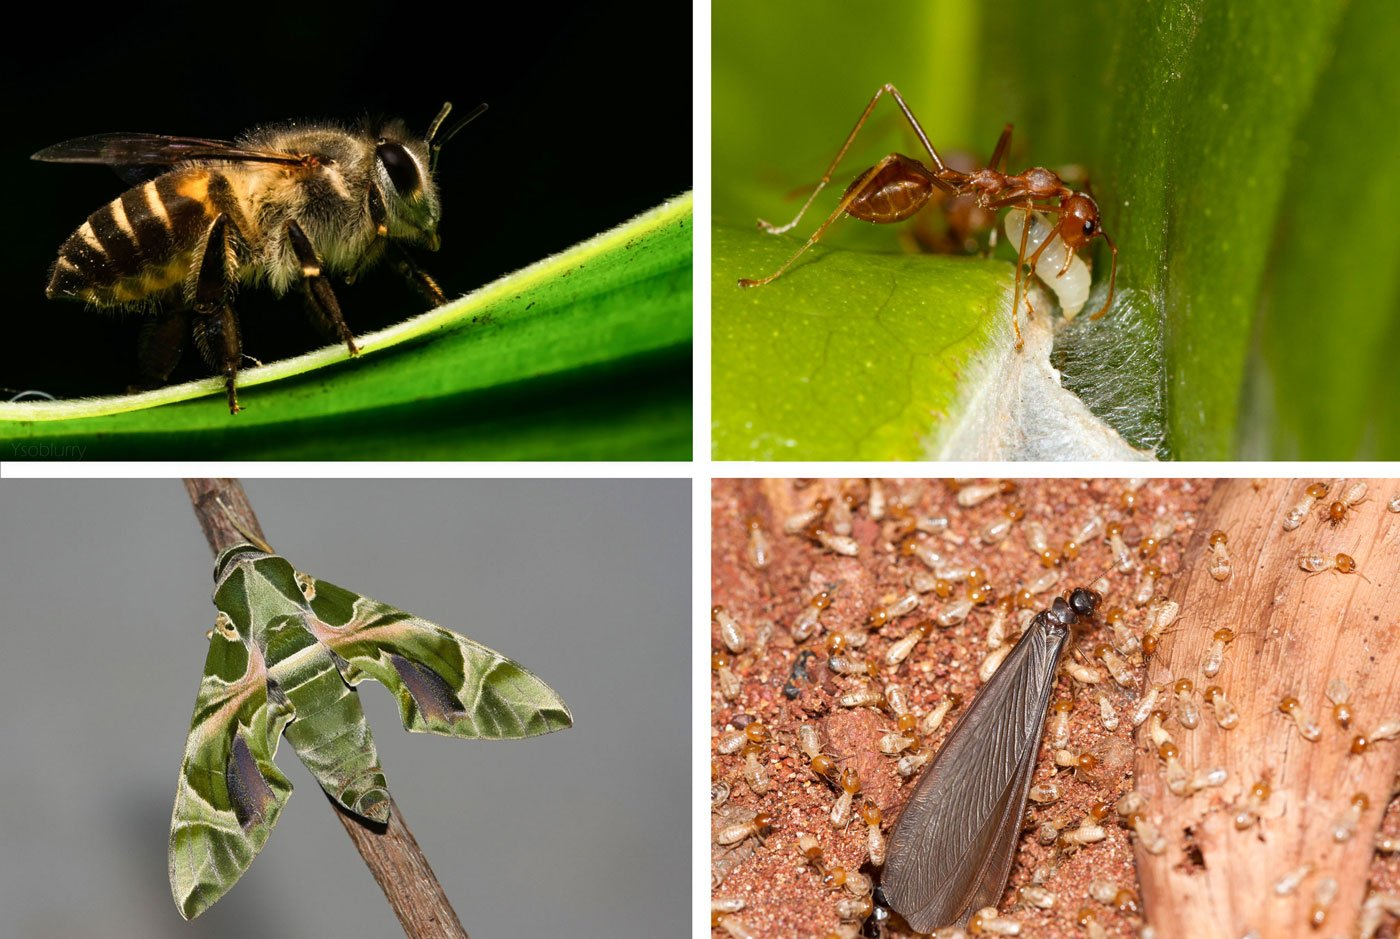 Top left: The apis cerana indica or the 'bee', resting on the oleander plant. Top right: Oecophylla smaragdina, the weaver ant, making a nest using silk produced by its young one. Bottom left: Daphnis nerii, the hawk moth, emerges at night and helps in pollination. Bottom right: Just before the rains, the winged form female termite emerges and leaves the the colony to form a new colony. The small ones are the infertile soldiers who break down organic matter like dead trees. These termites are also food for some human communities who eat it for the high protein content